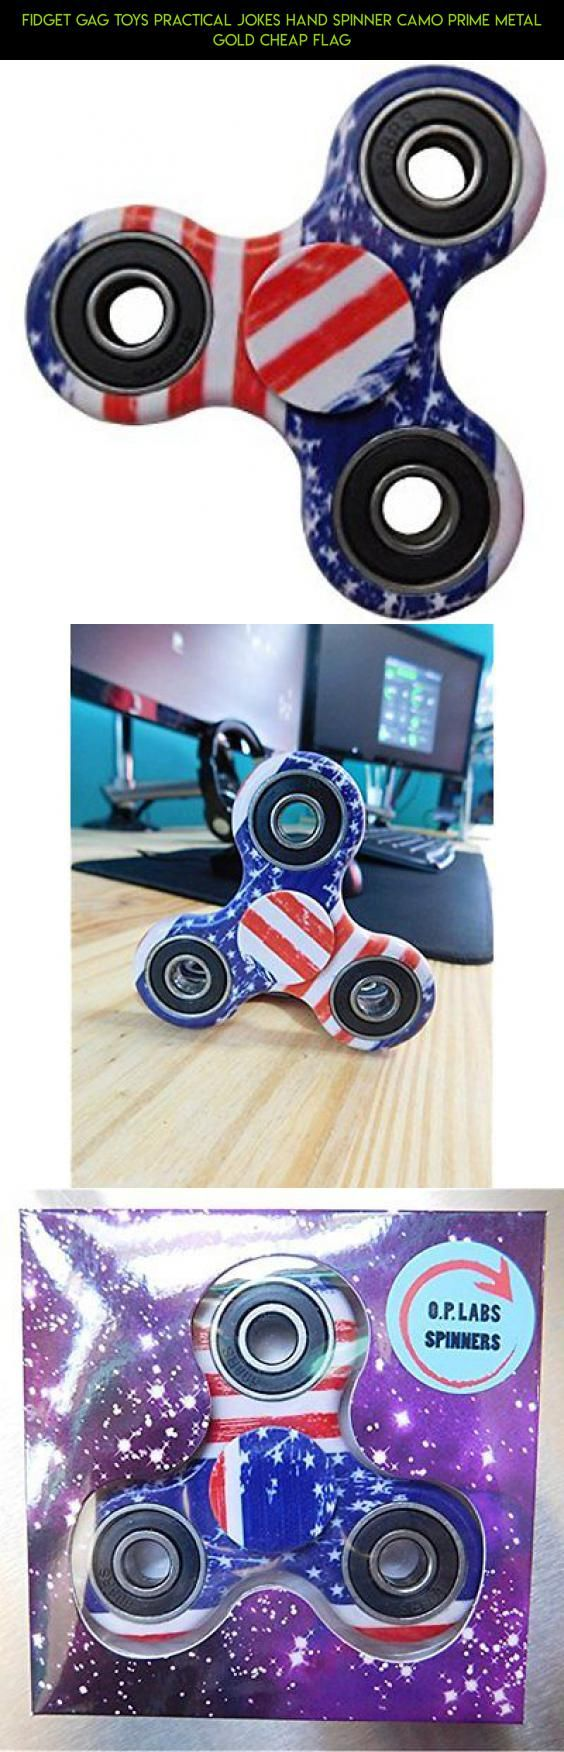 Fidget Gag Toys Practical Jokes Hand Spinner Camo Prime Metal Gold Cheap Flag #kit #metal #spinner #plans #cheap #racing #fpv #shopping #products #drone #camera #tech #gadgets #technology #parts